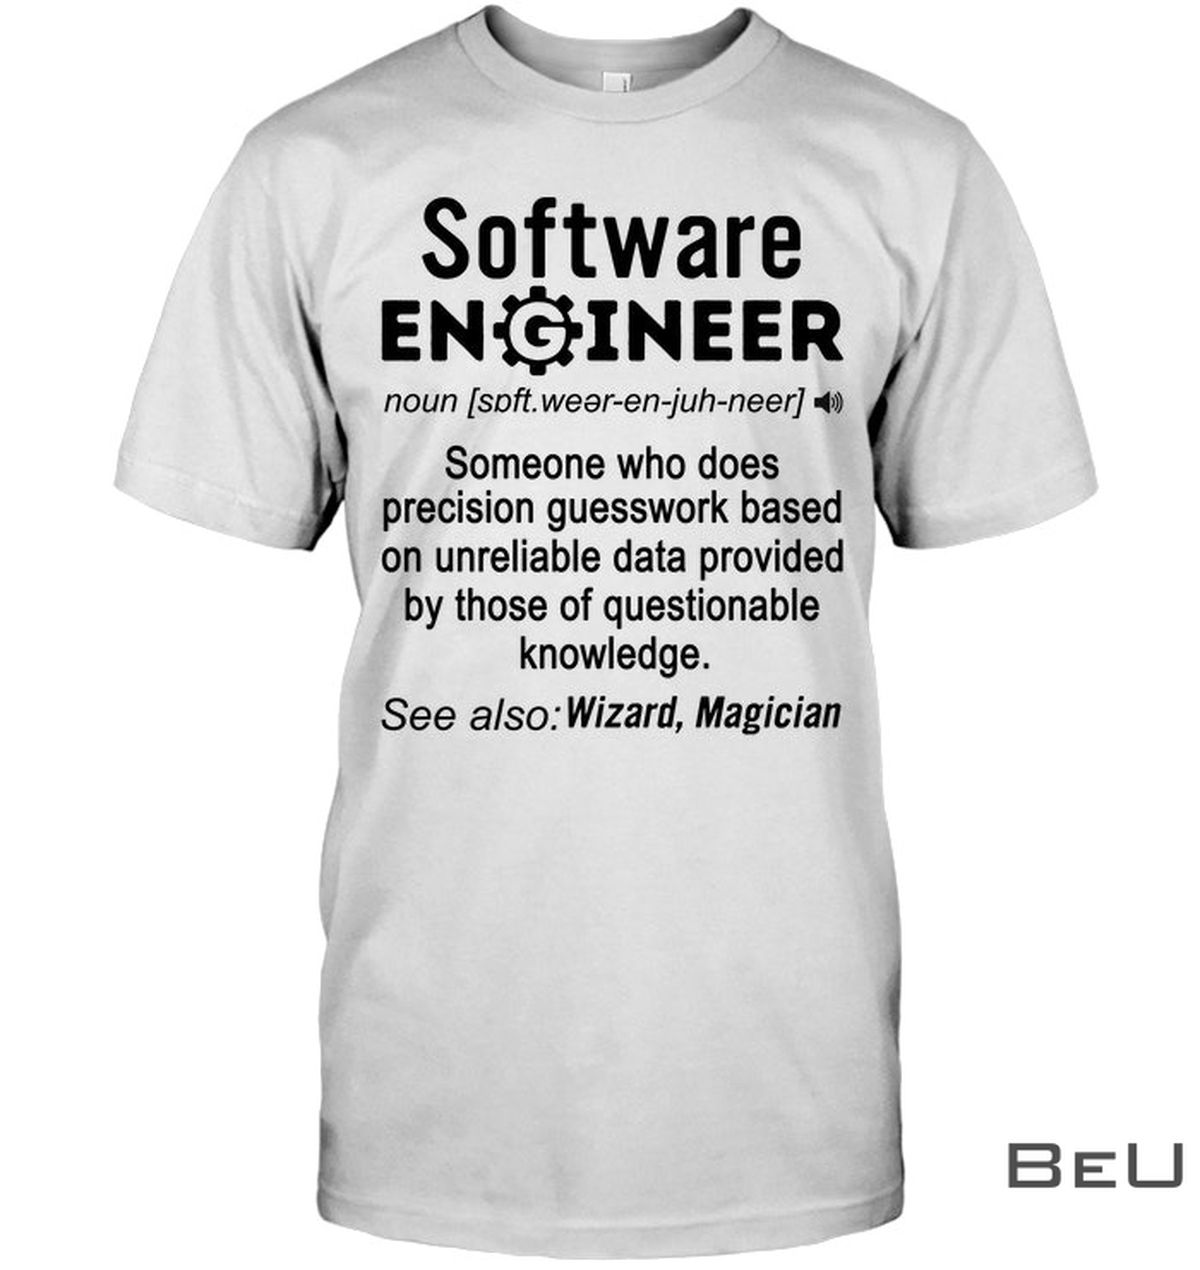 Software Engineer Definition Funny Shirt